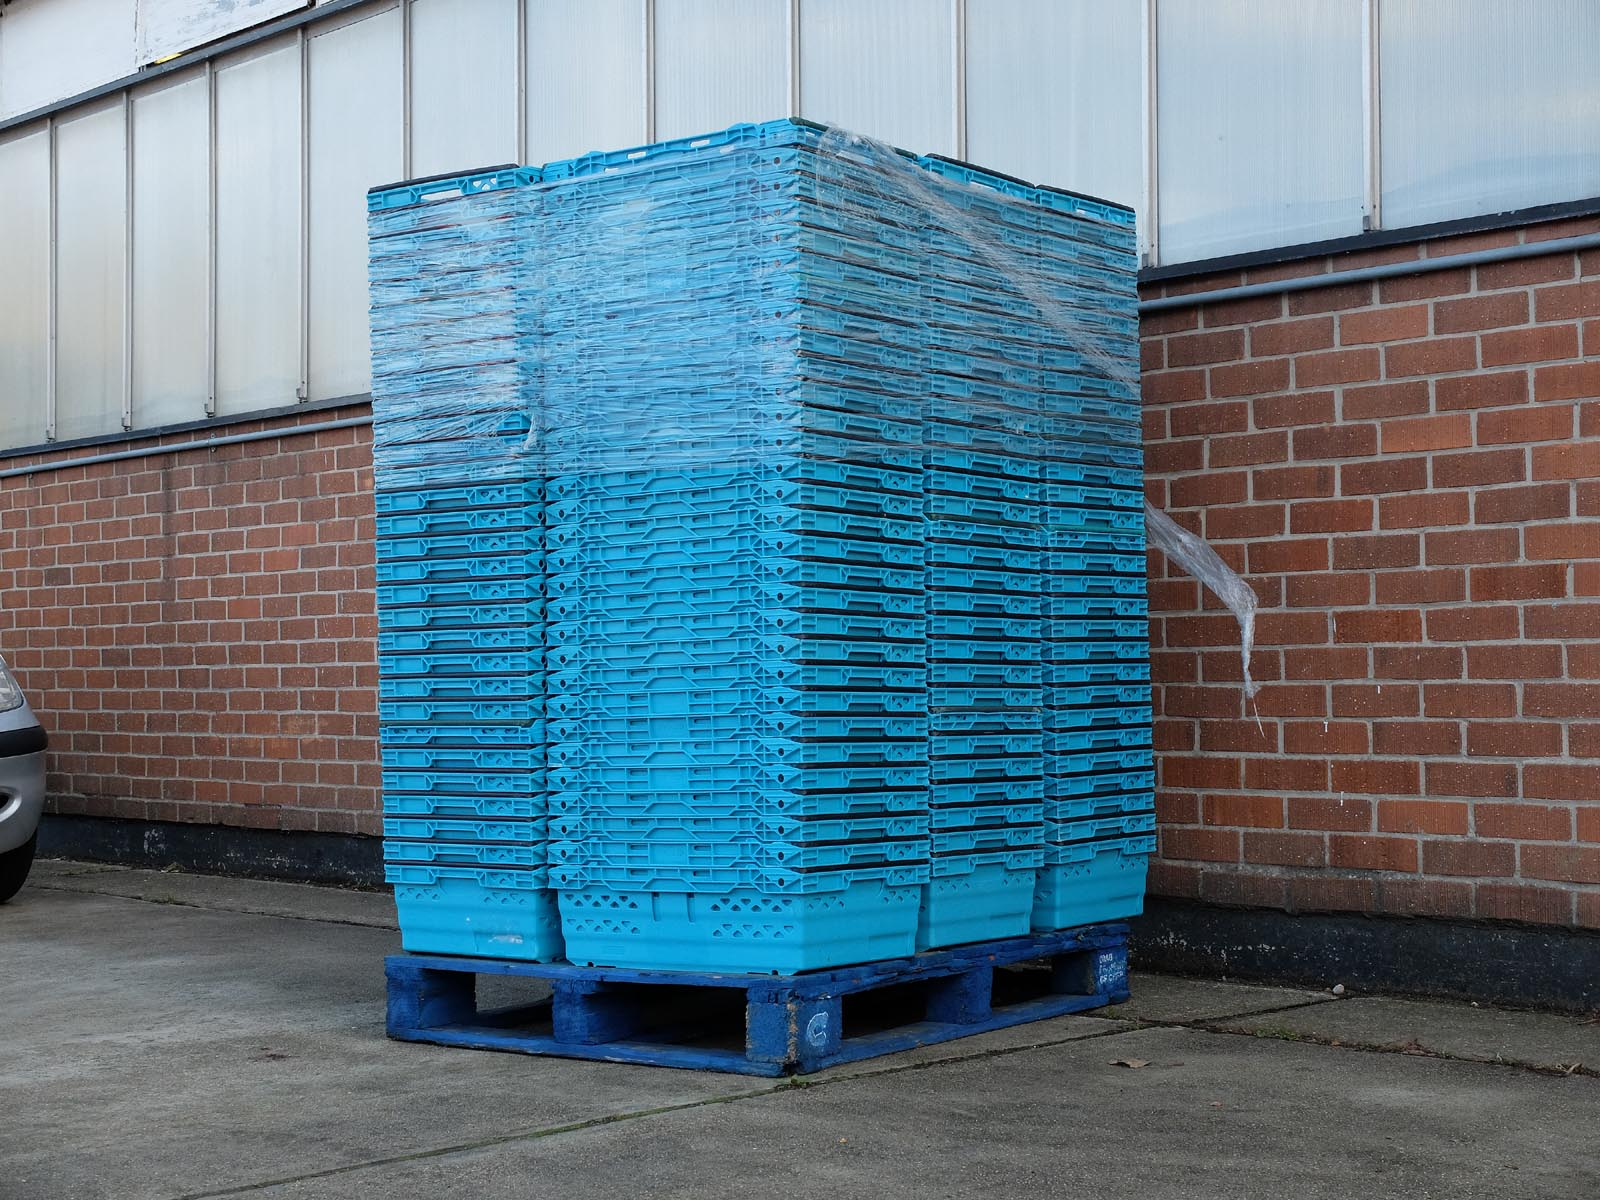 165 per pallet these trays are the work horse of the UK supermarket retail operation and logistics struction. Ventilated with two bail arms allowing stacking and nest.